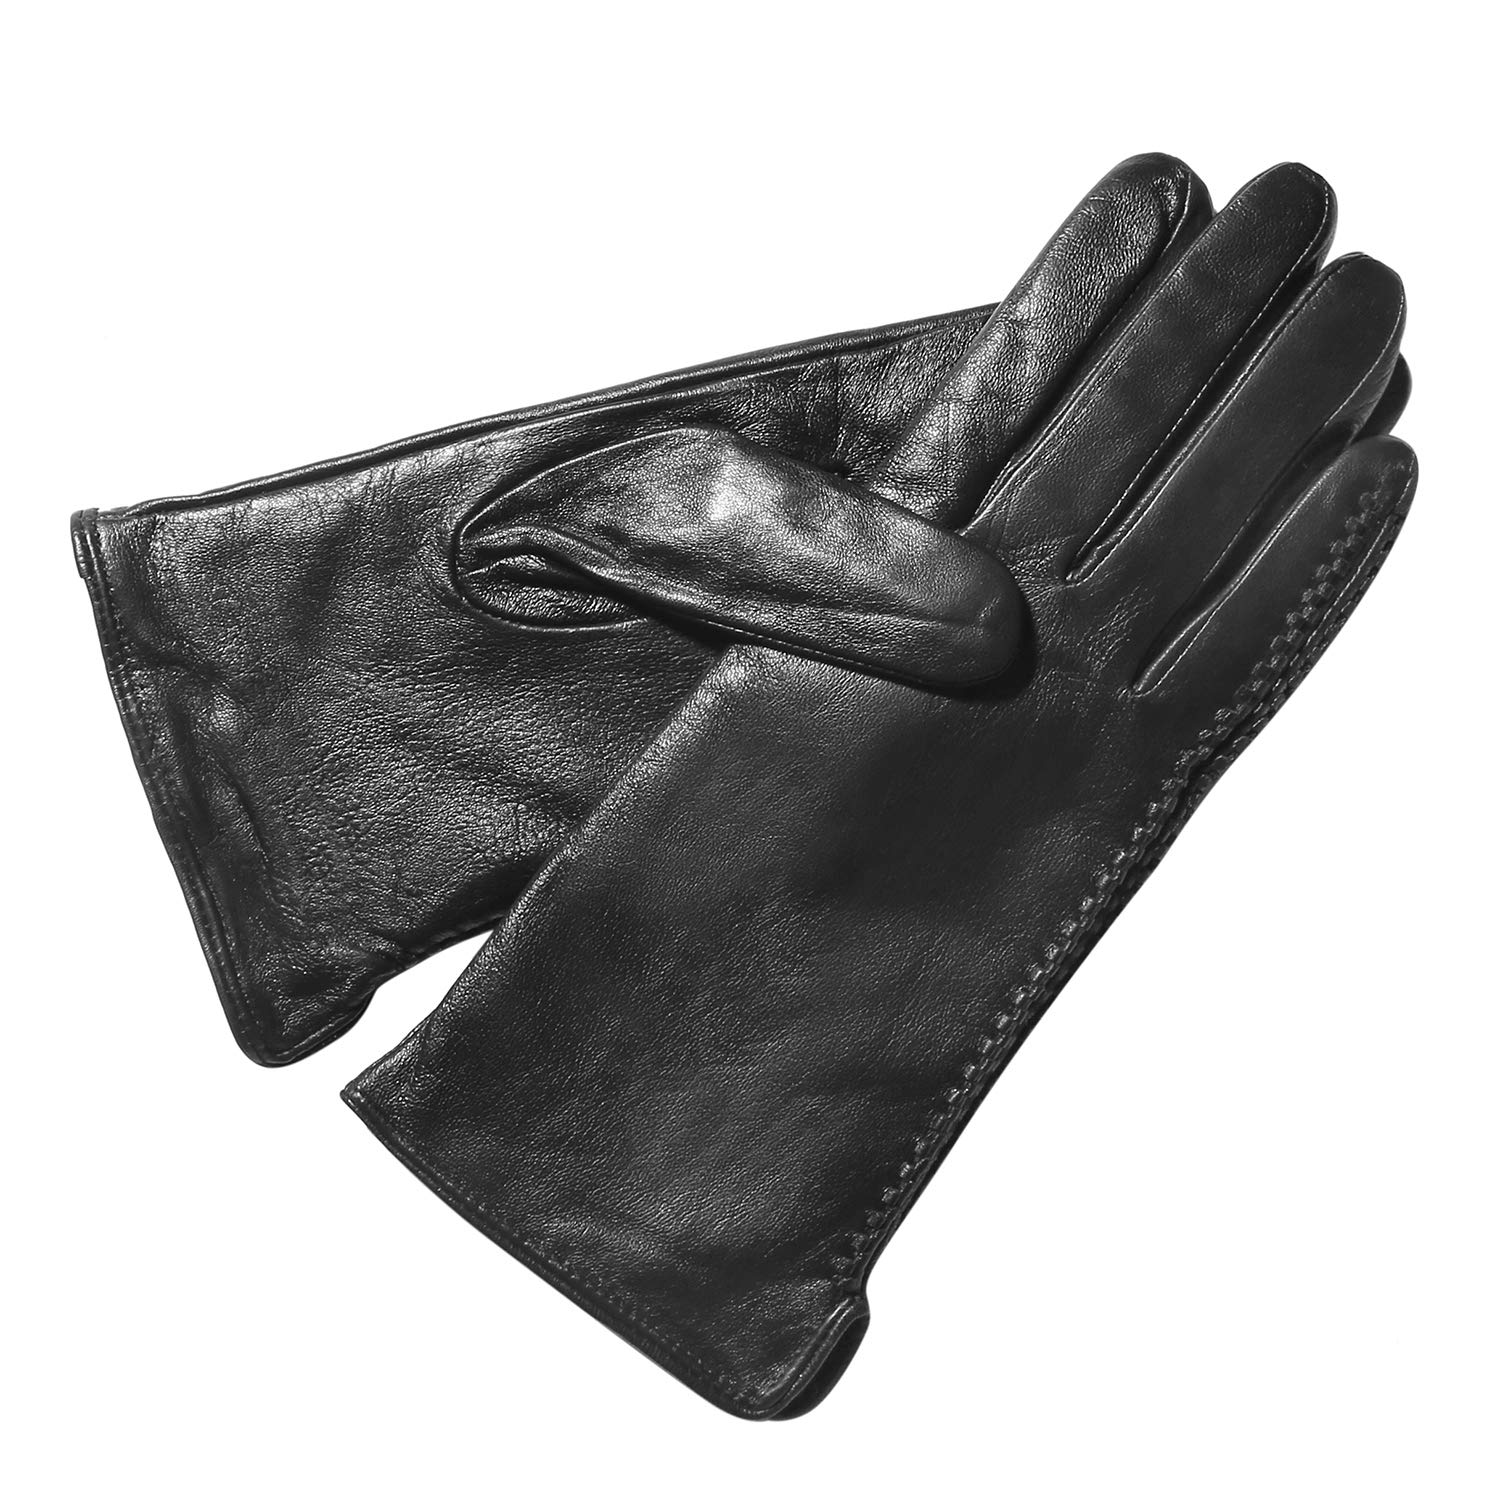 Women's Winter Sheepskin Gloves Full Hand Touch Screen Texting Warm Driving Locomotive Leather Gloves 100% Cashmere Lining by QNLYCZY